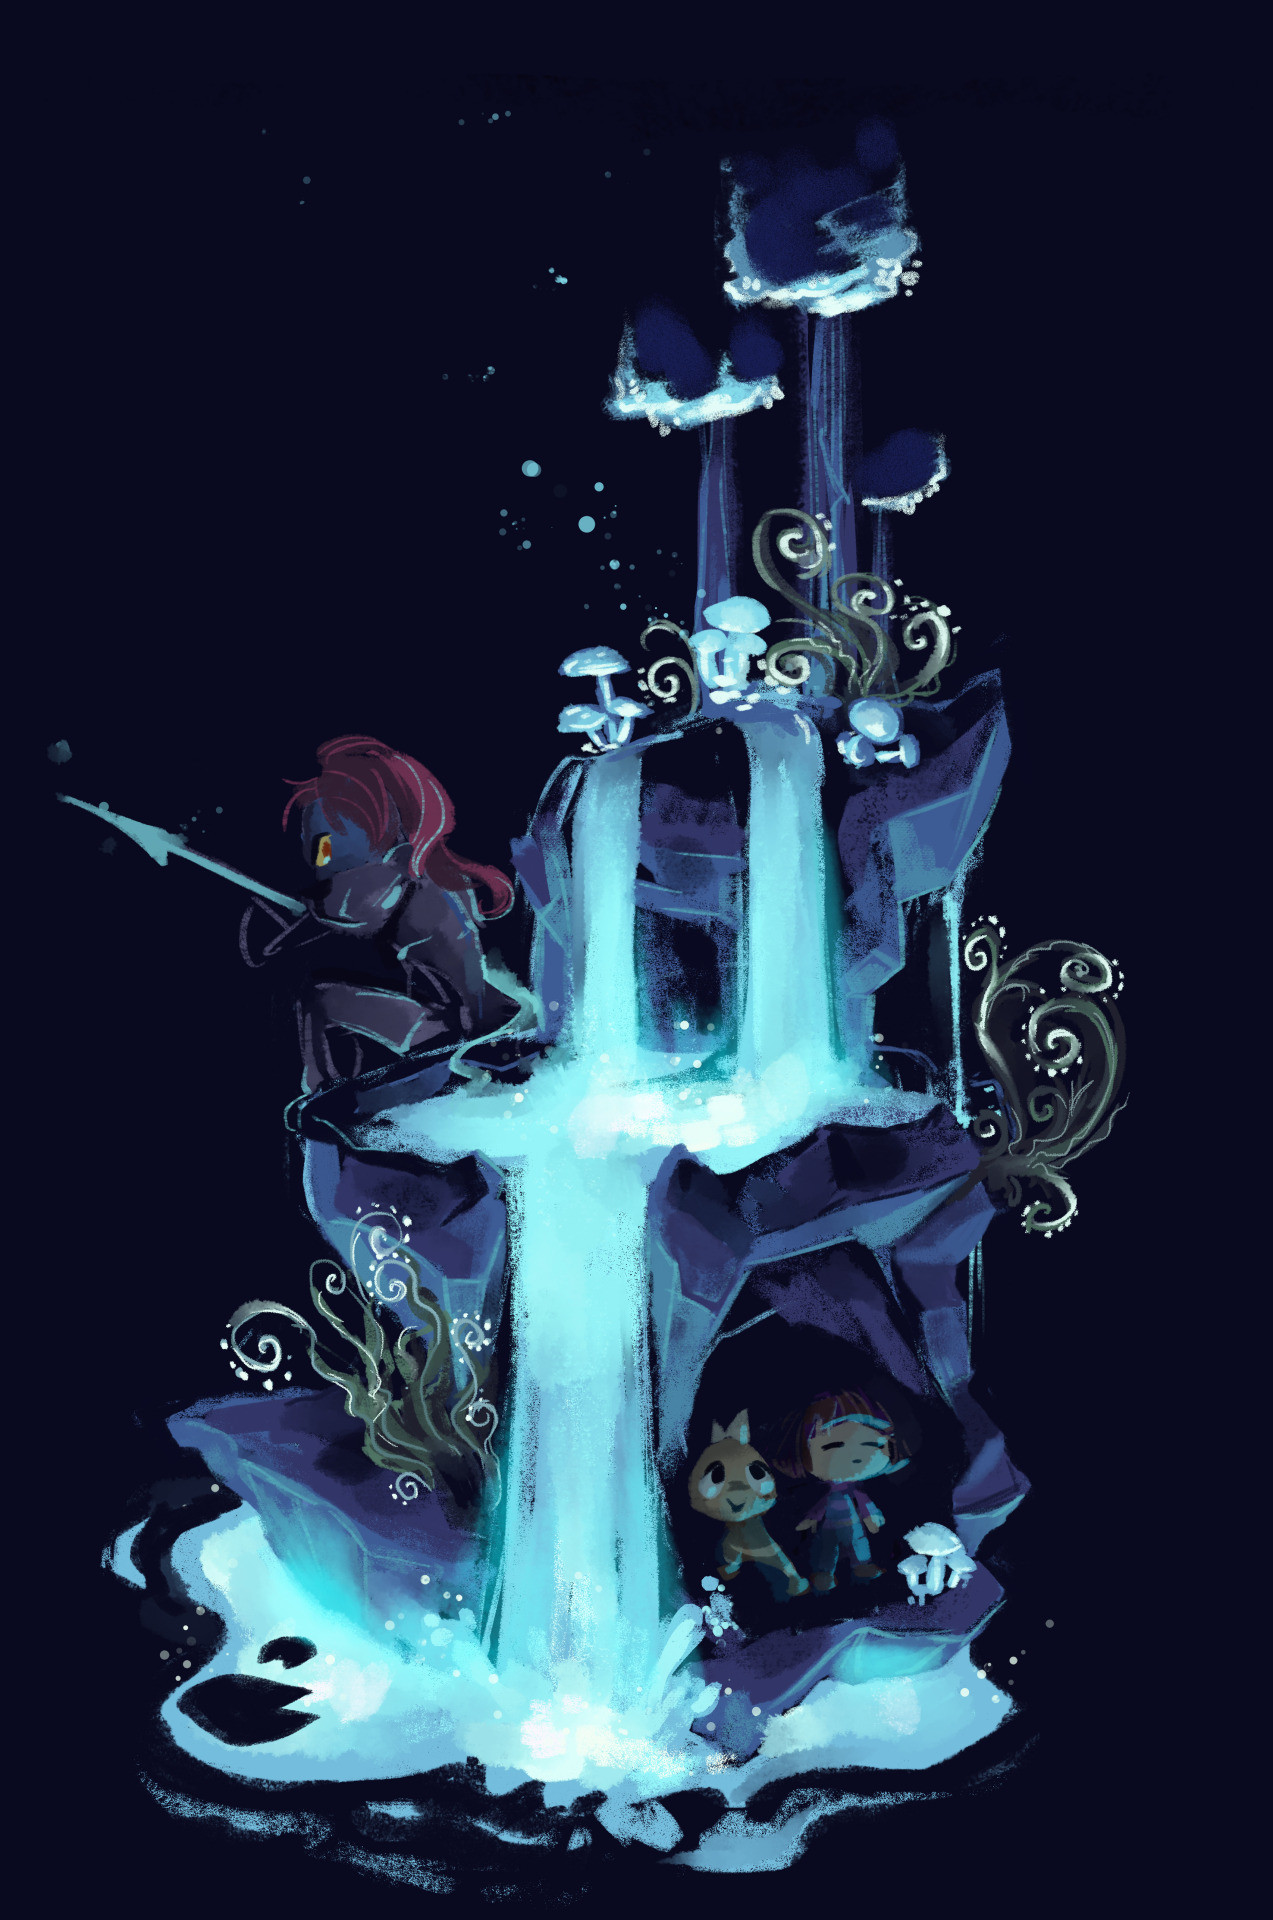 75 Undertale Undyne Android Iphone Desktop Hd Backgrounds Wallpapers 1080p 4k 1273x1920 2020